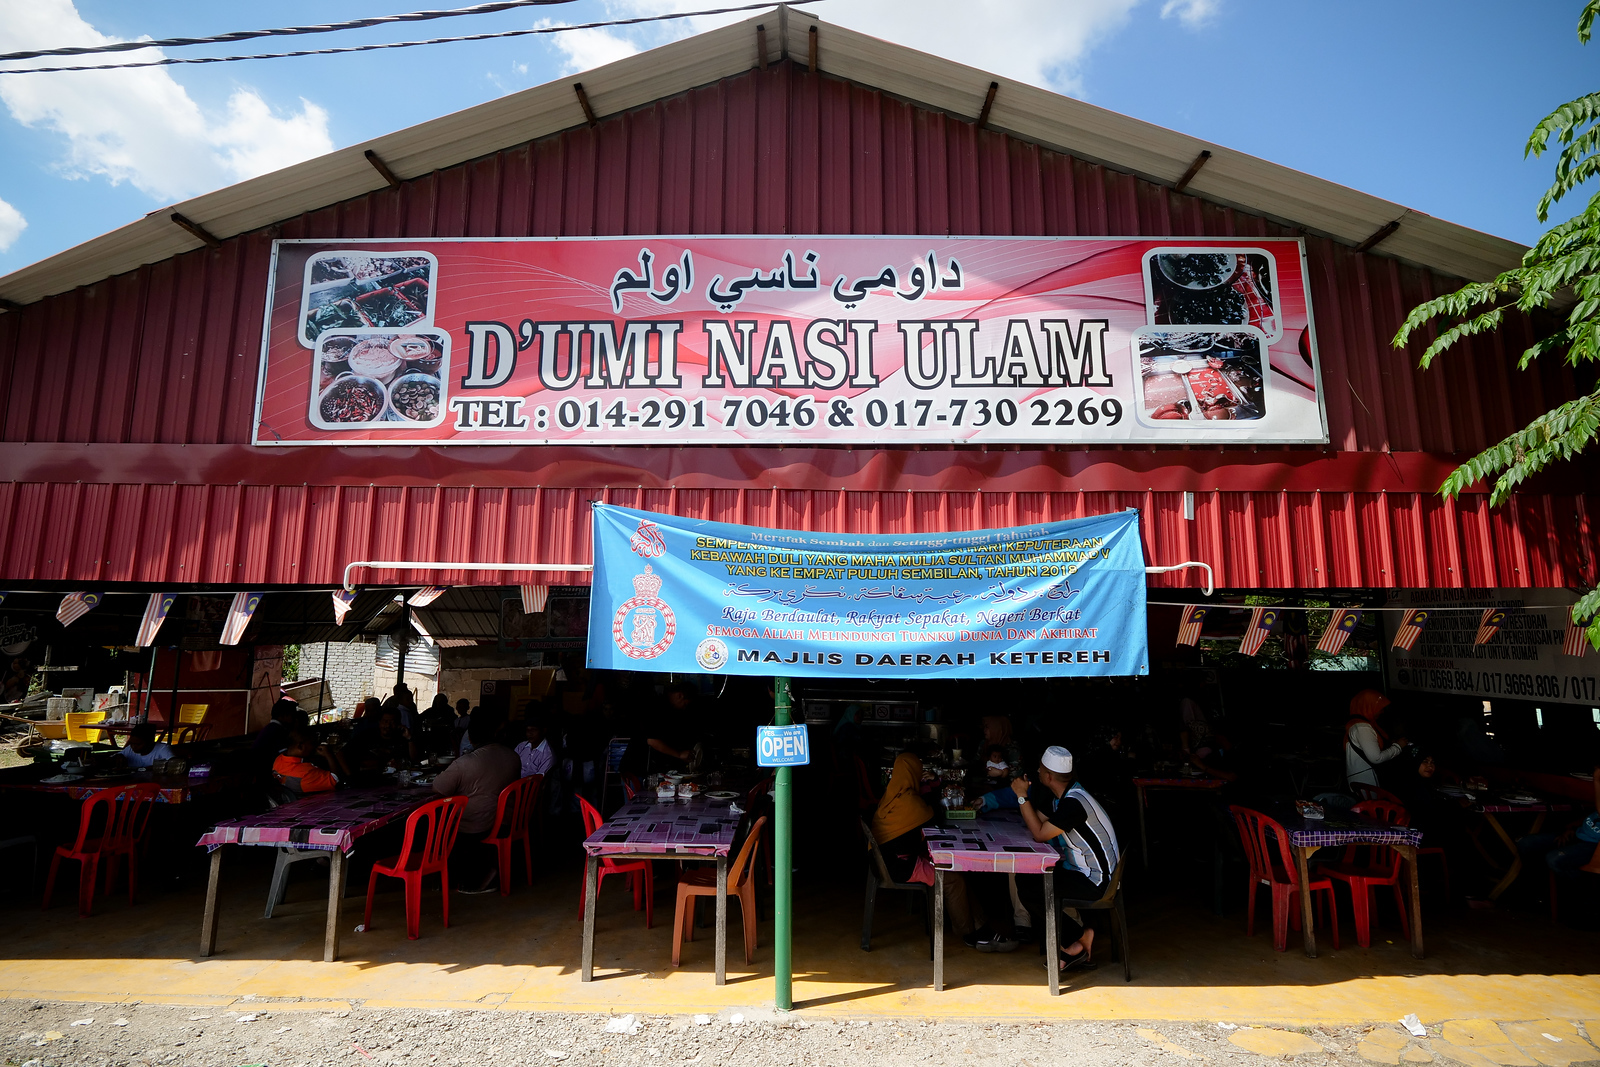 A food worth traveling for, this restaurant serving Kelantanese food and local vegetables, D'Umi Nasi Ulam is a must-visit for all travelers passing through Northern Malaysia (Kota Bahru area)